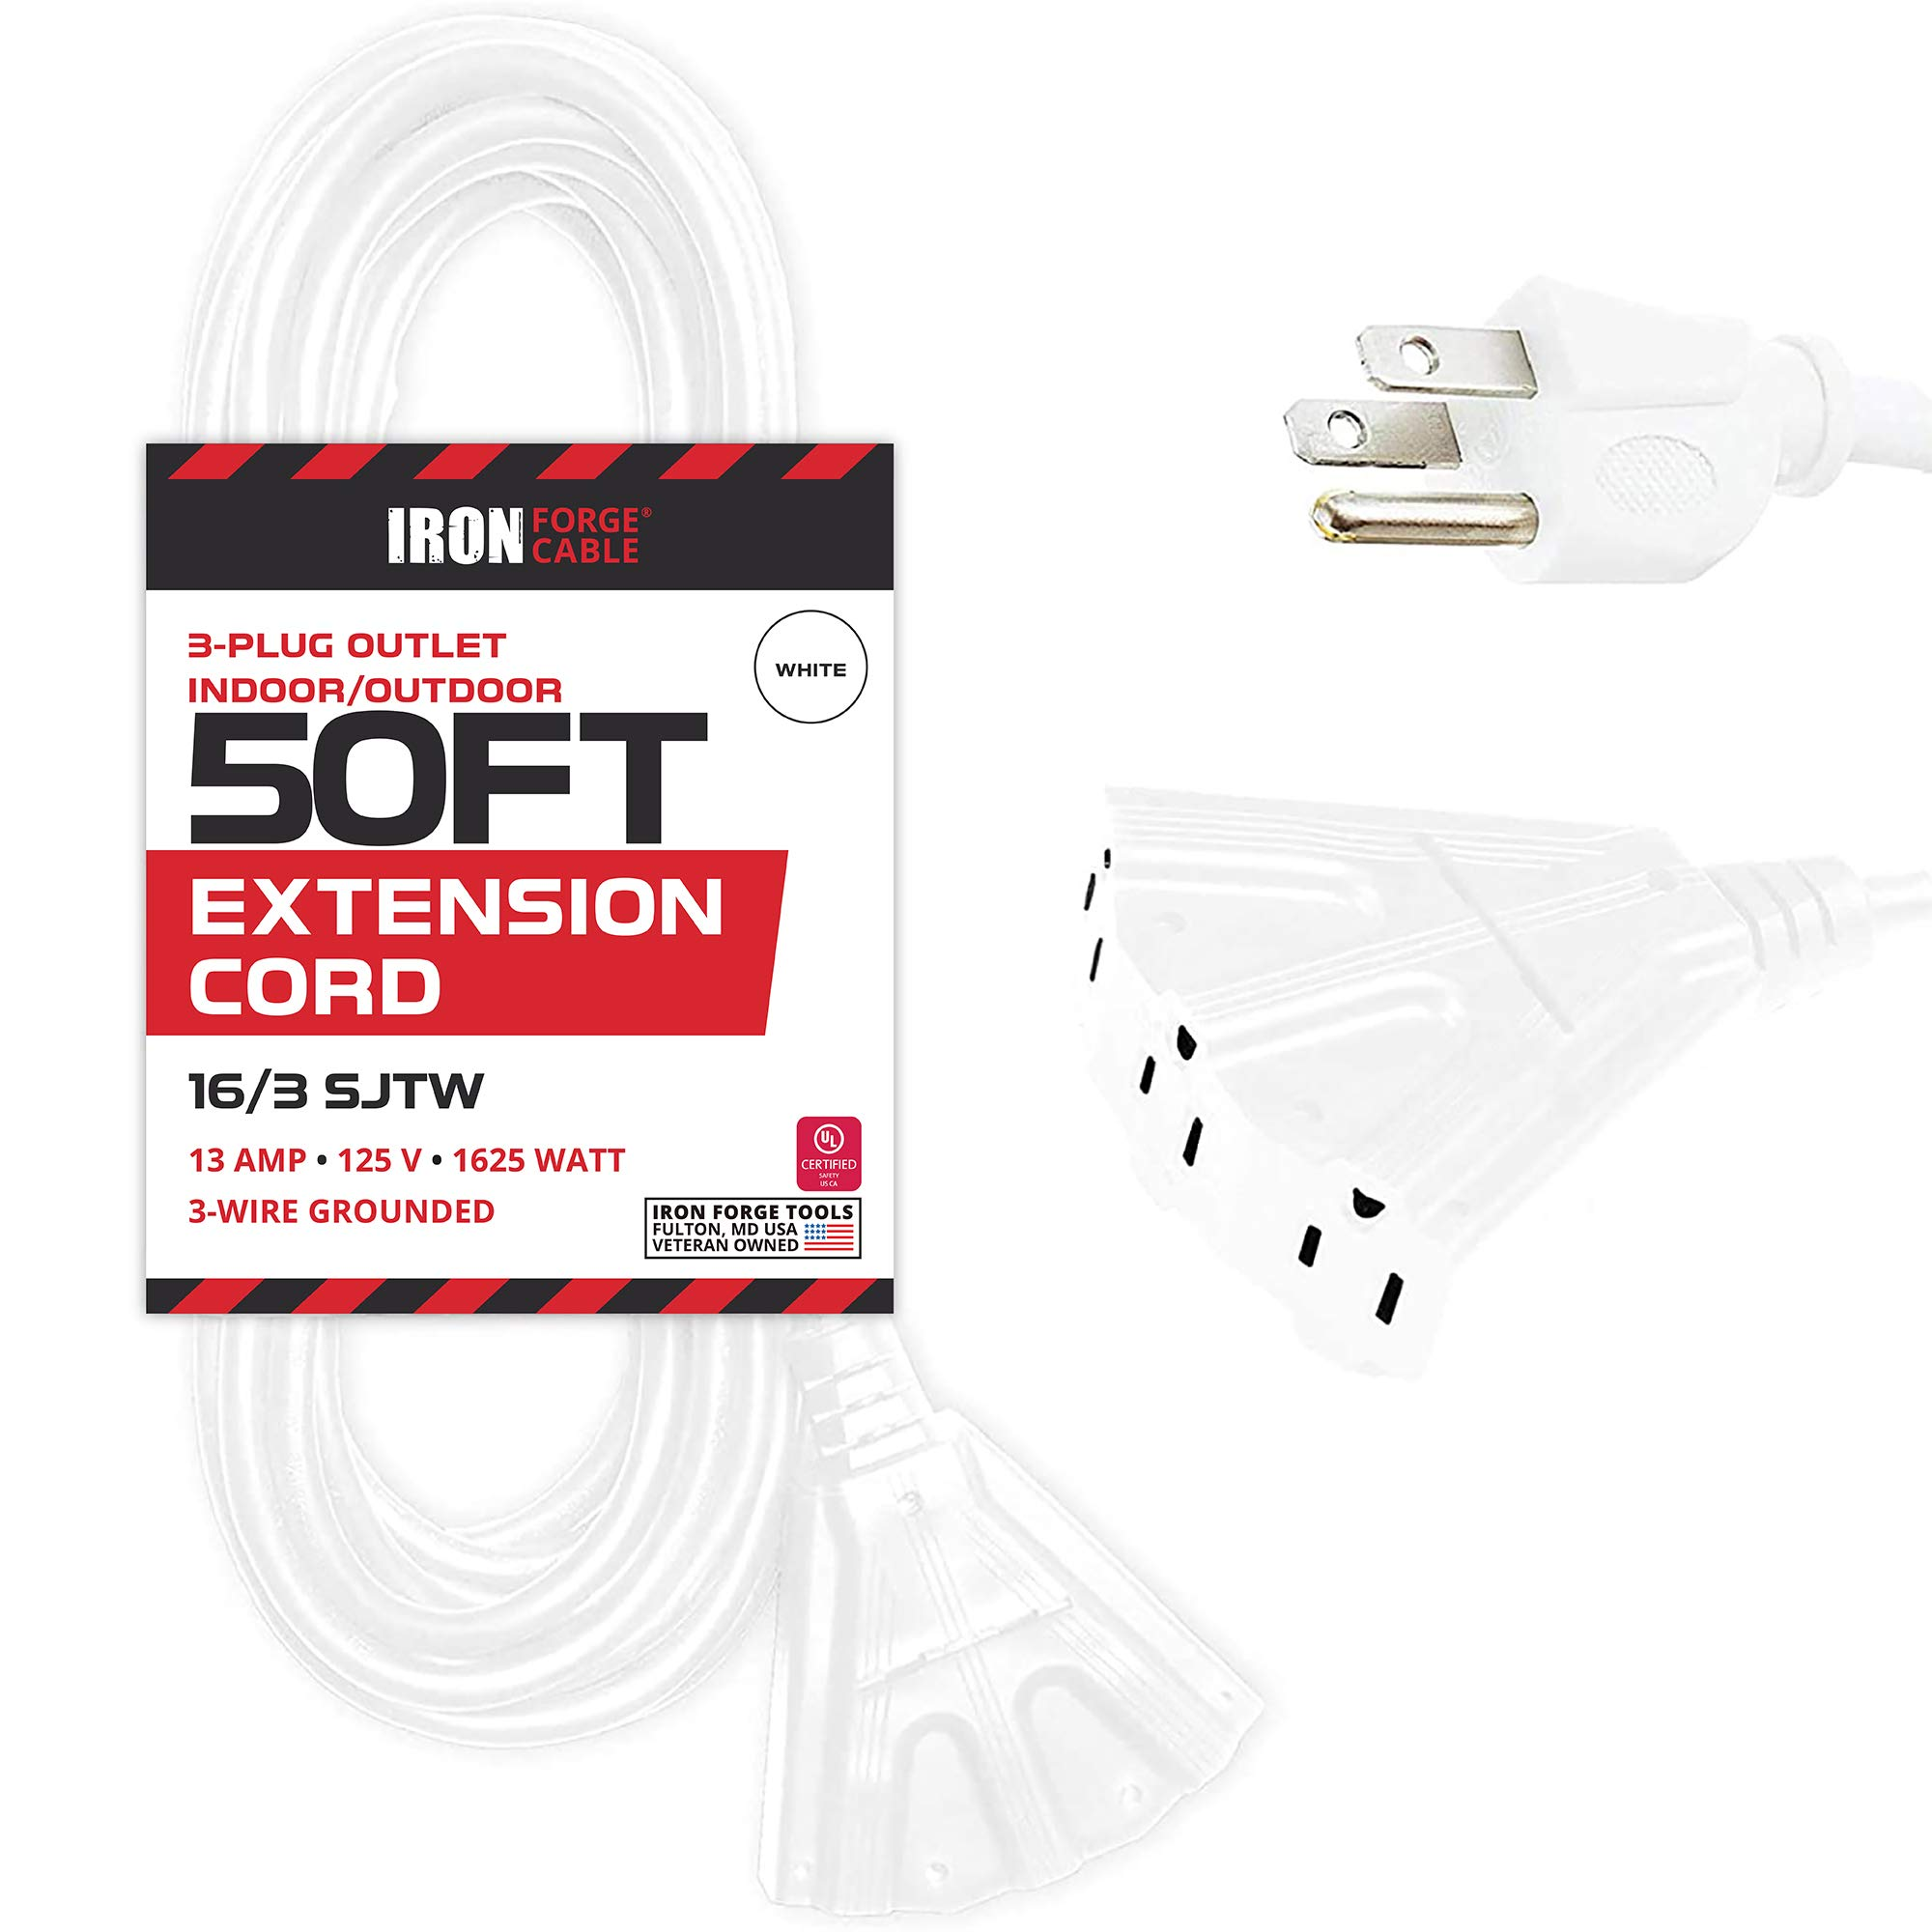 50 Ft Outdoor Extension Cord with 3 Electrical Power Outlets - 16/3 SJTW Durable White Cable